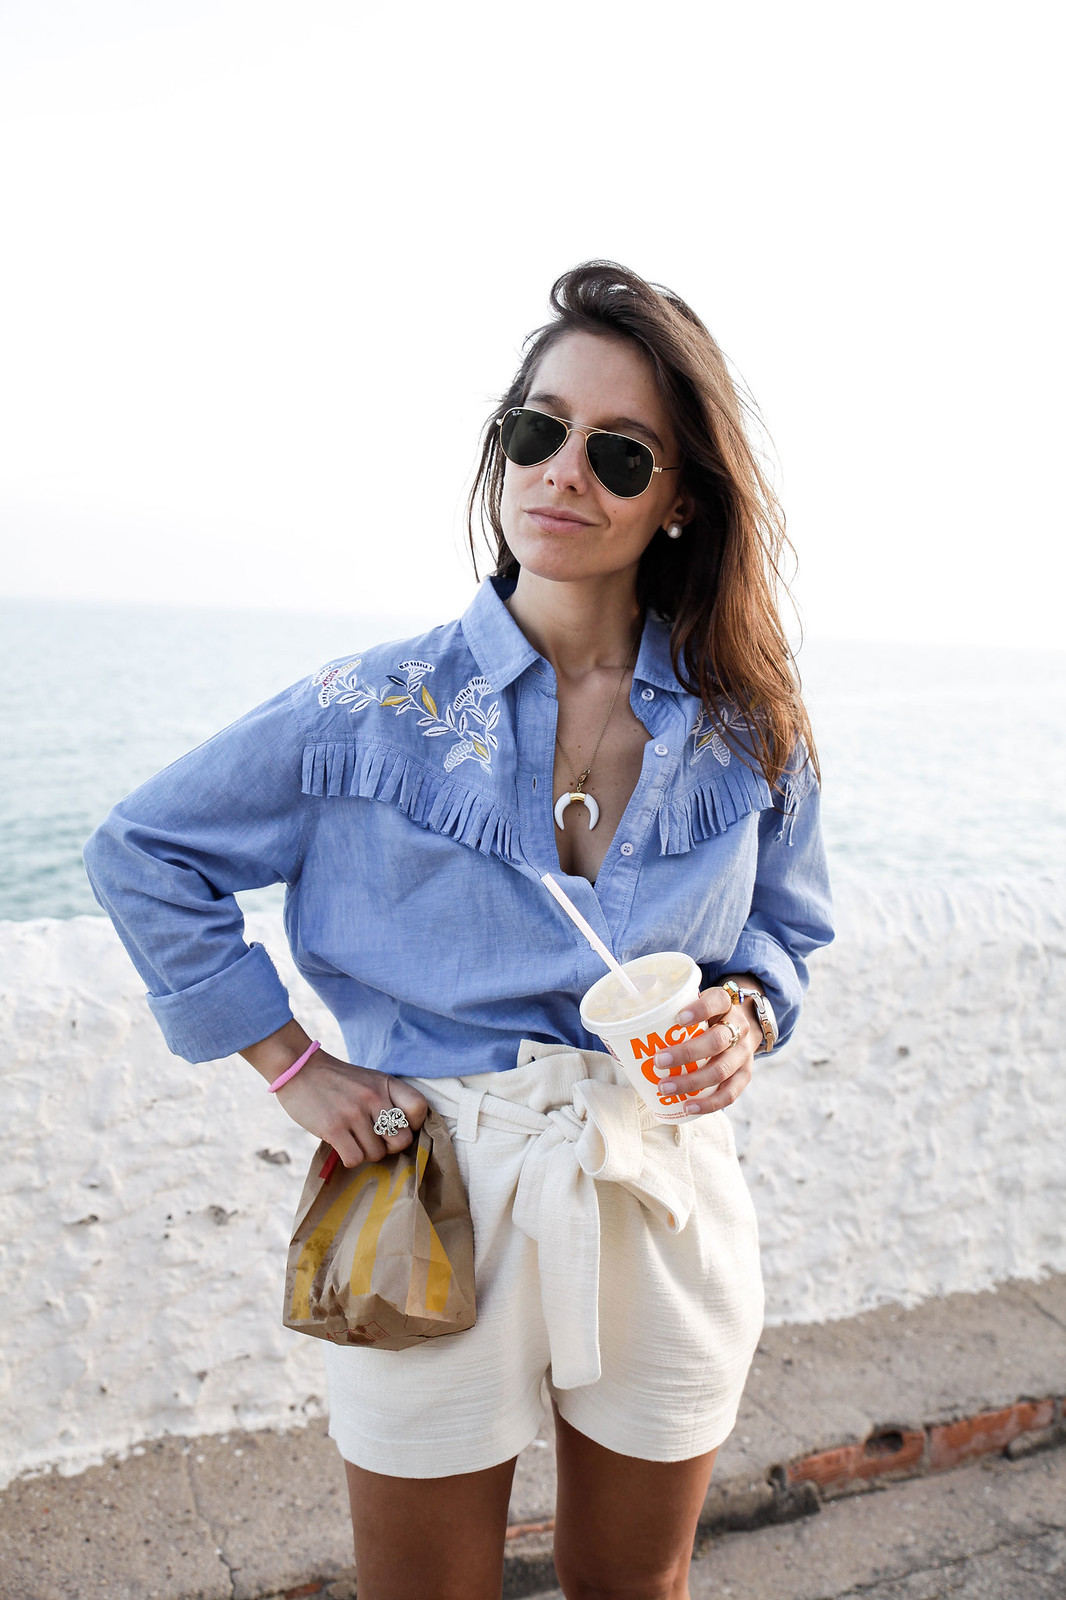 04_camisa_flecos_azul_mysundaymorning_fringed_shirt_fringed_theguestgirl_influencer_inspo_outft_summer_laura_santolaria_public_desire_denim_shoes_mc_donalds